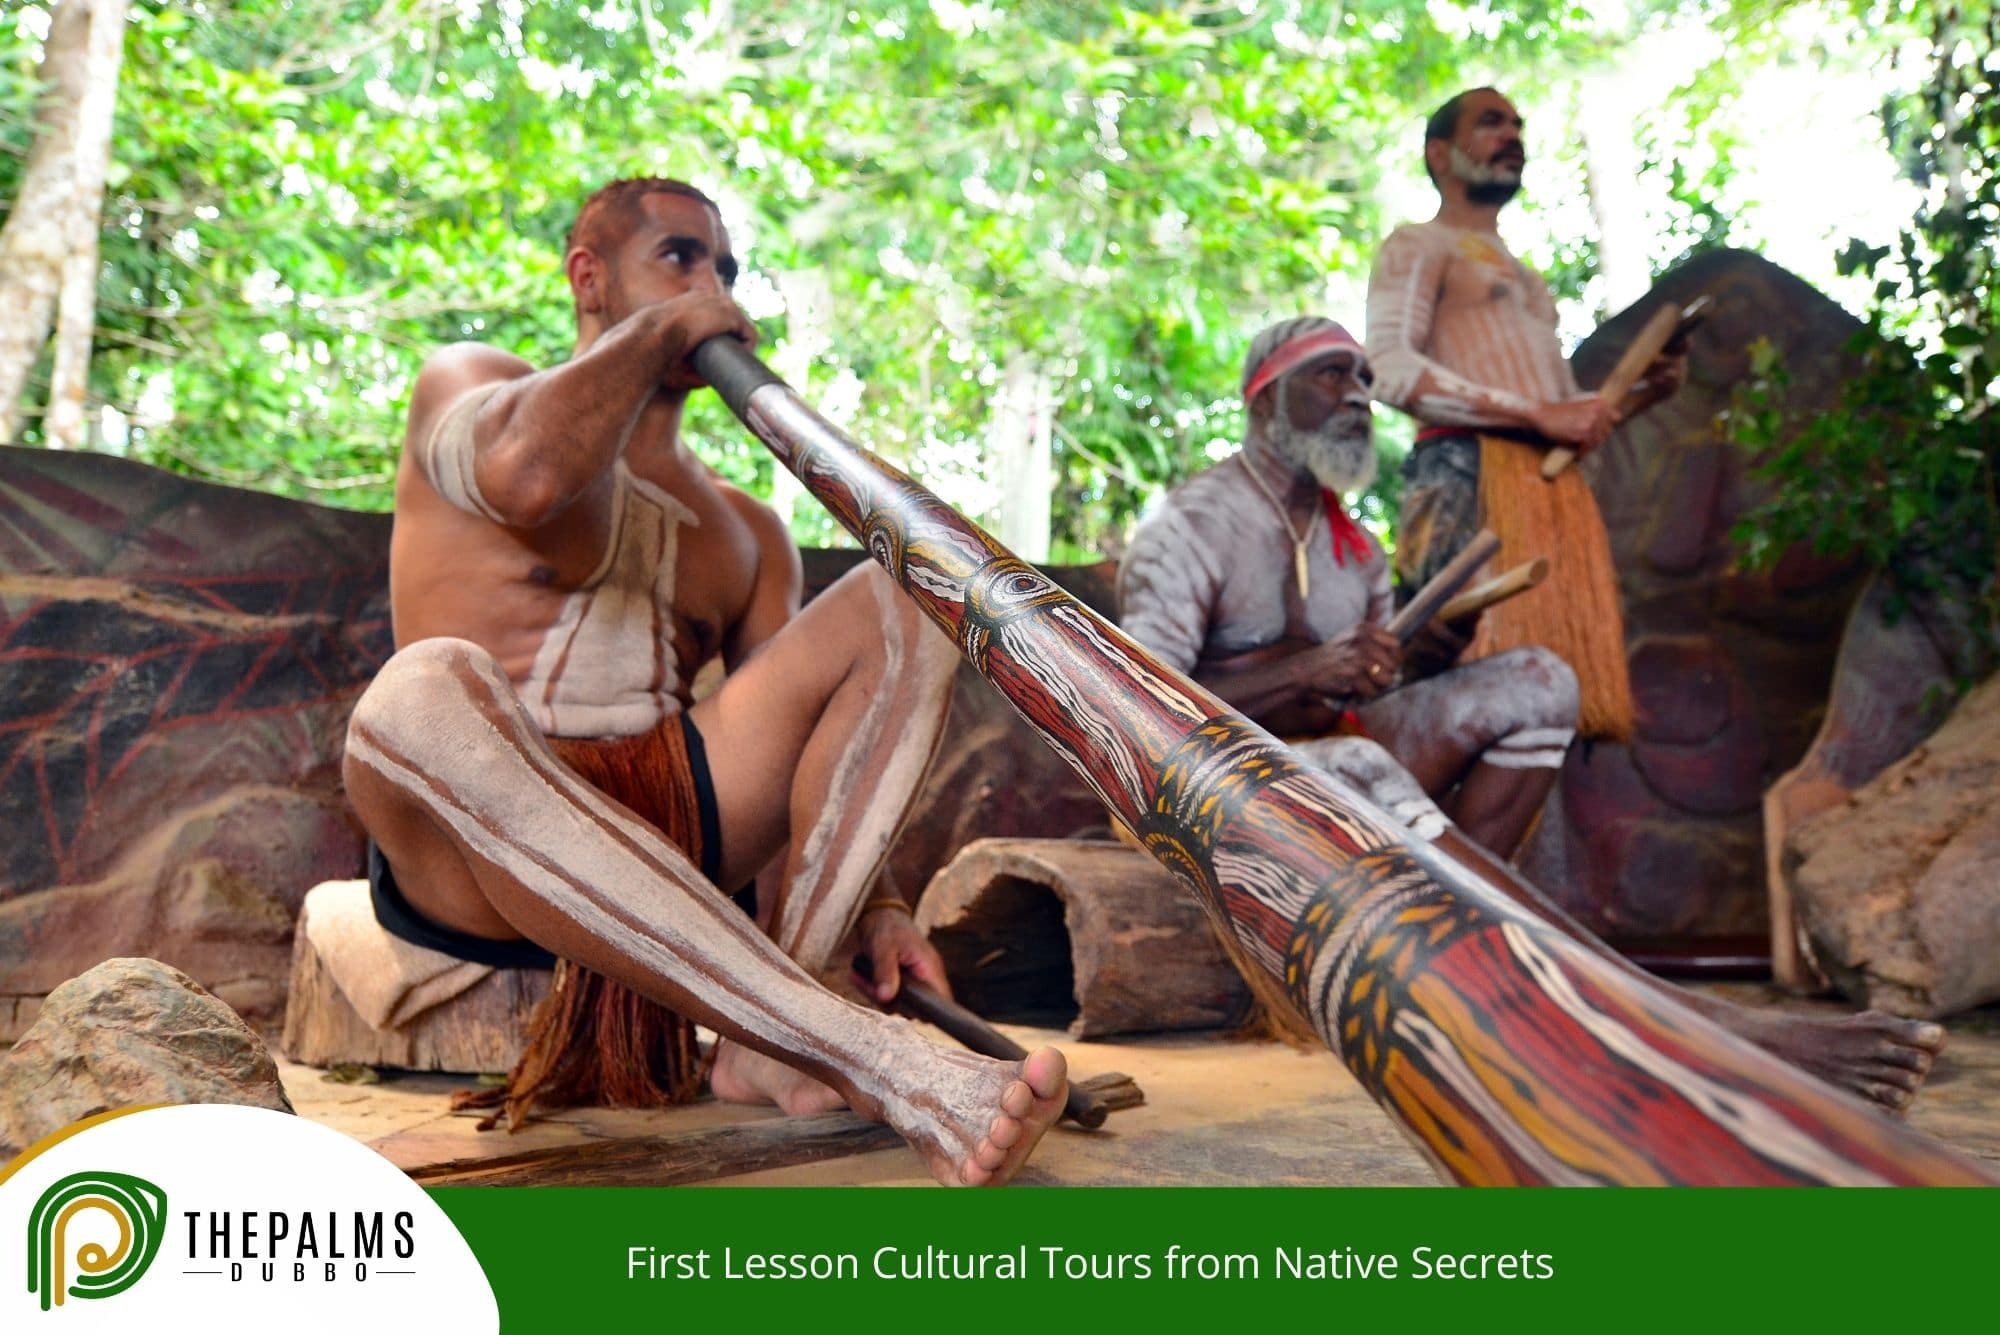 First Lesson Cultural Tours from Native Secrets